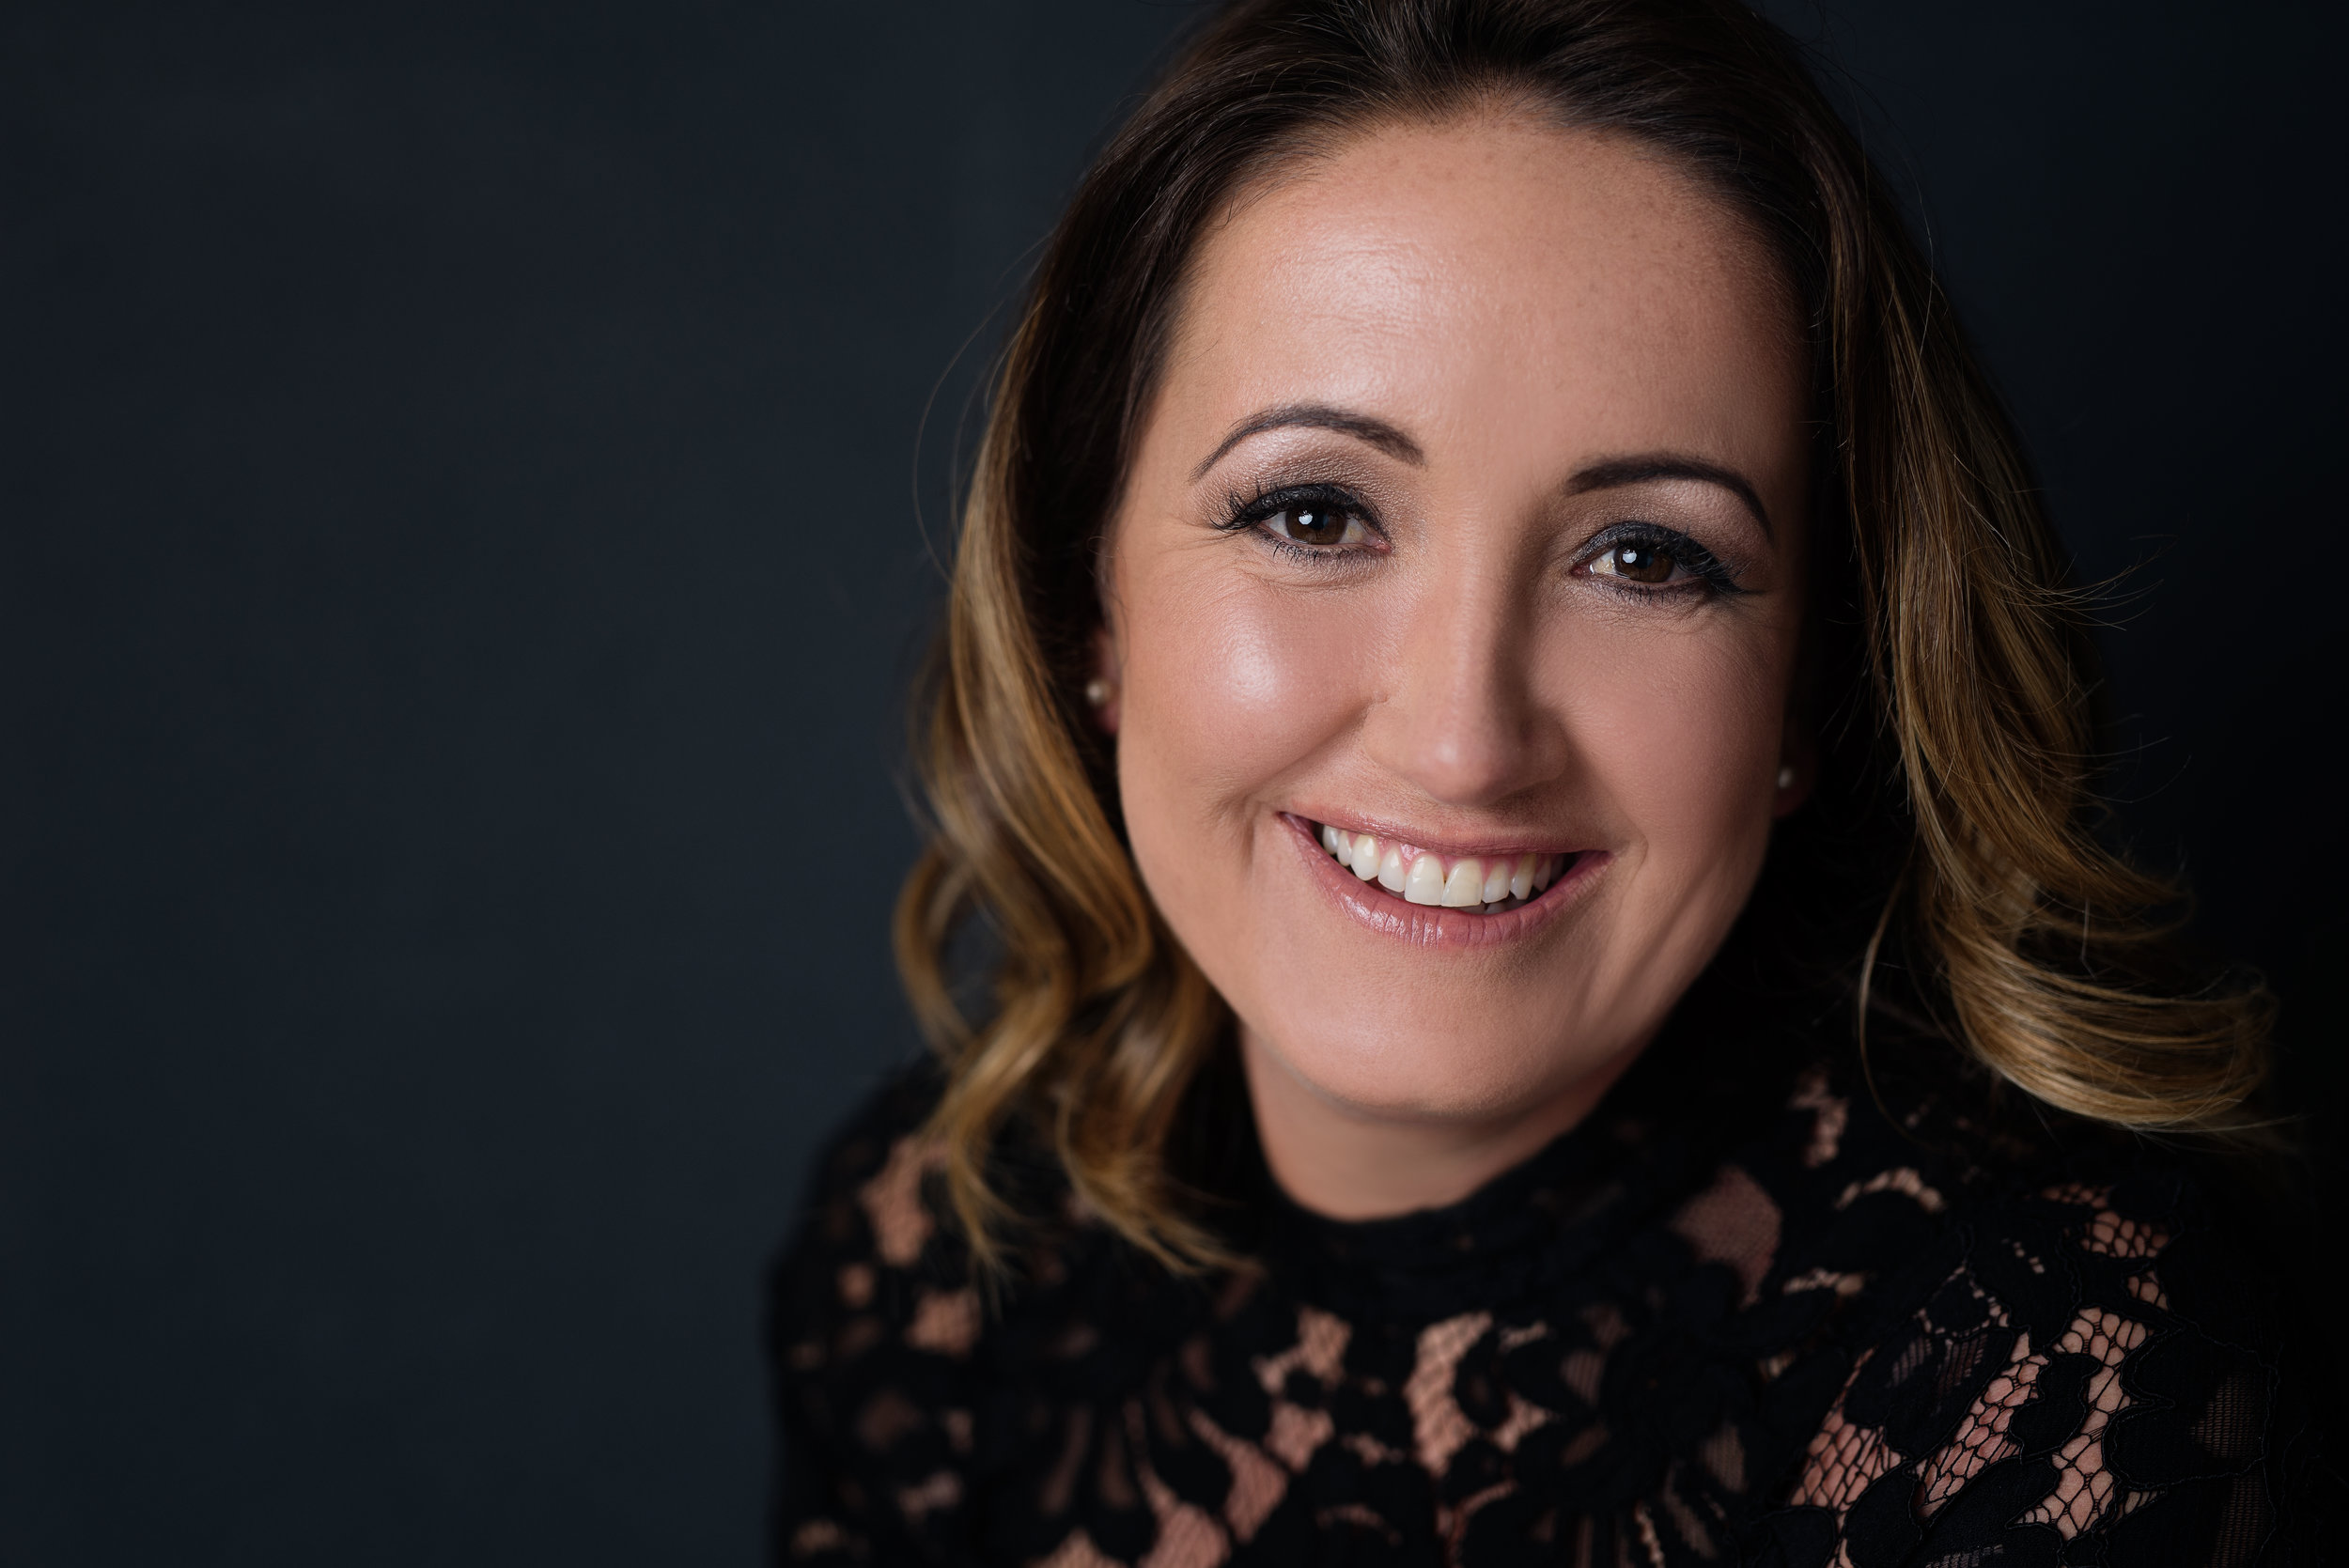 Headshot of a lady smiling wearing black lace top with a dark grey background in studio | Corporate Photographer Aylesbury Buckinghamshire and Thame Oxfordshire